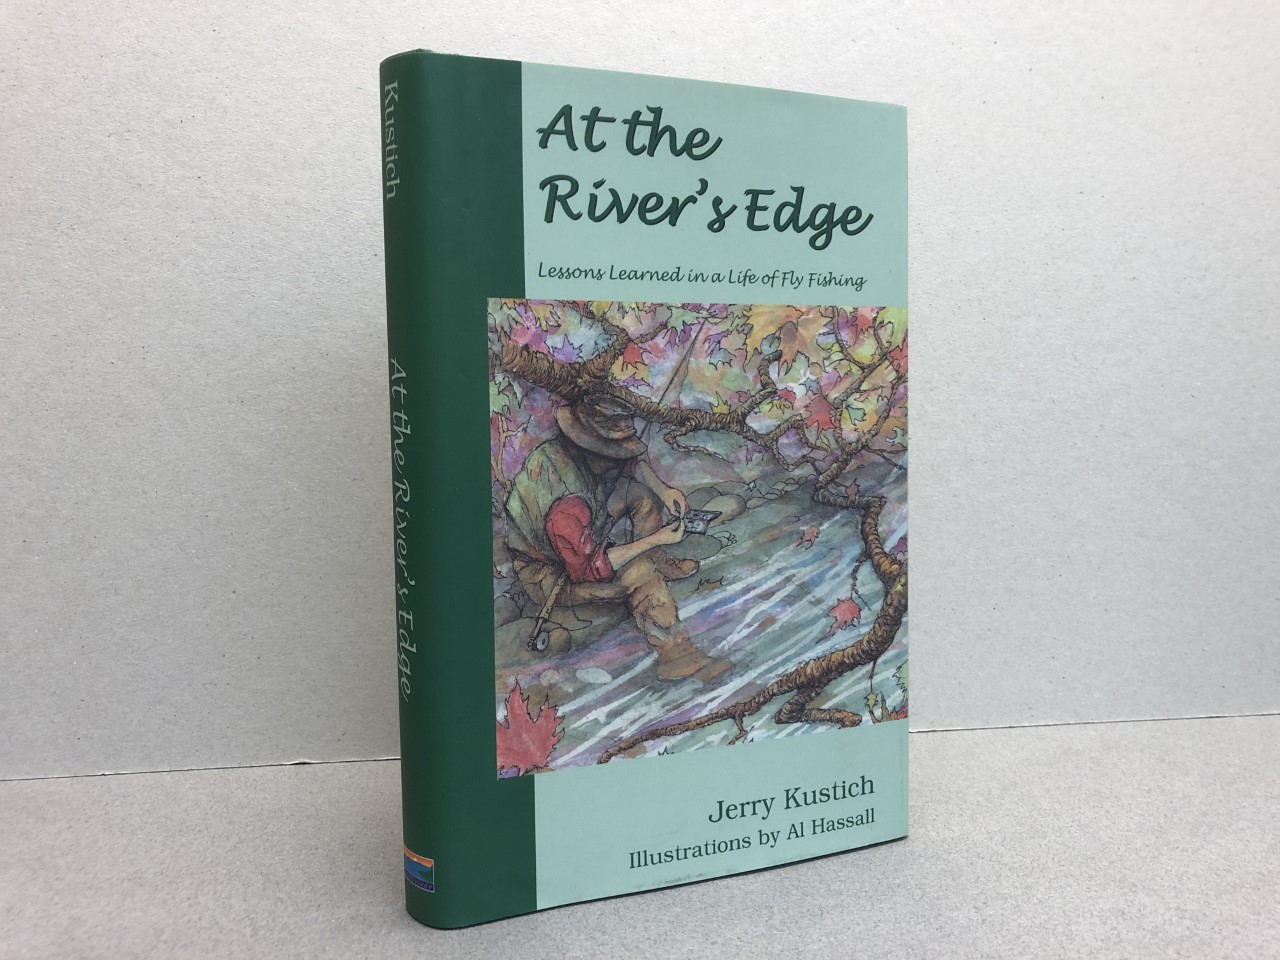 Image for At the River's Edge: Lessons Learned in a Life of Fly Fishing